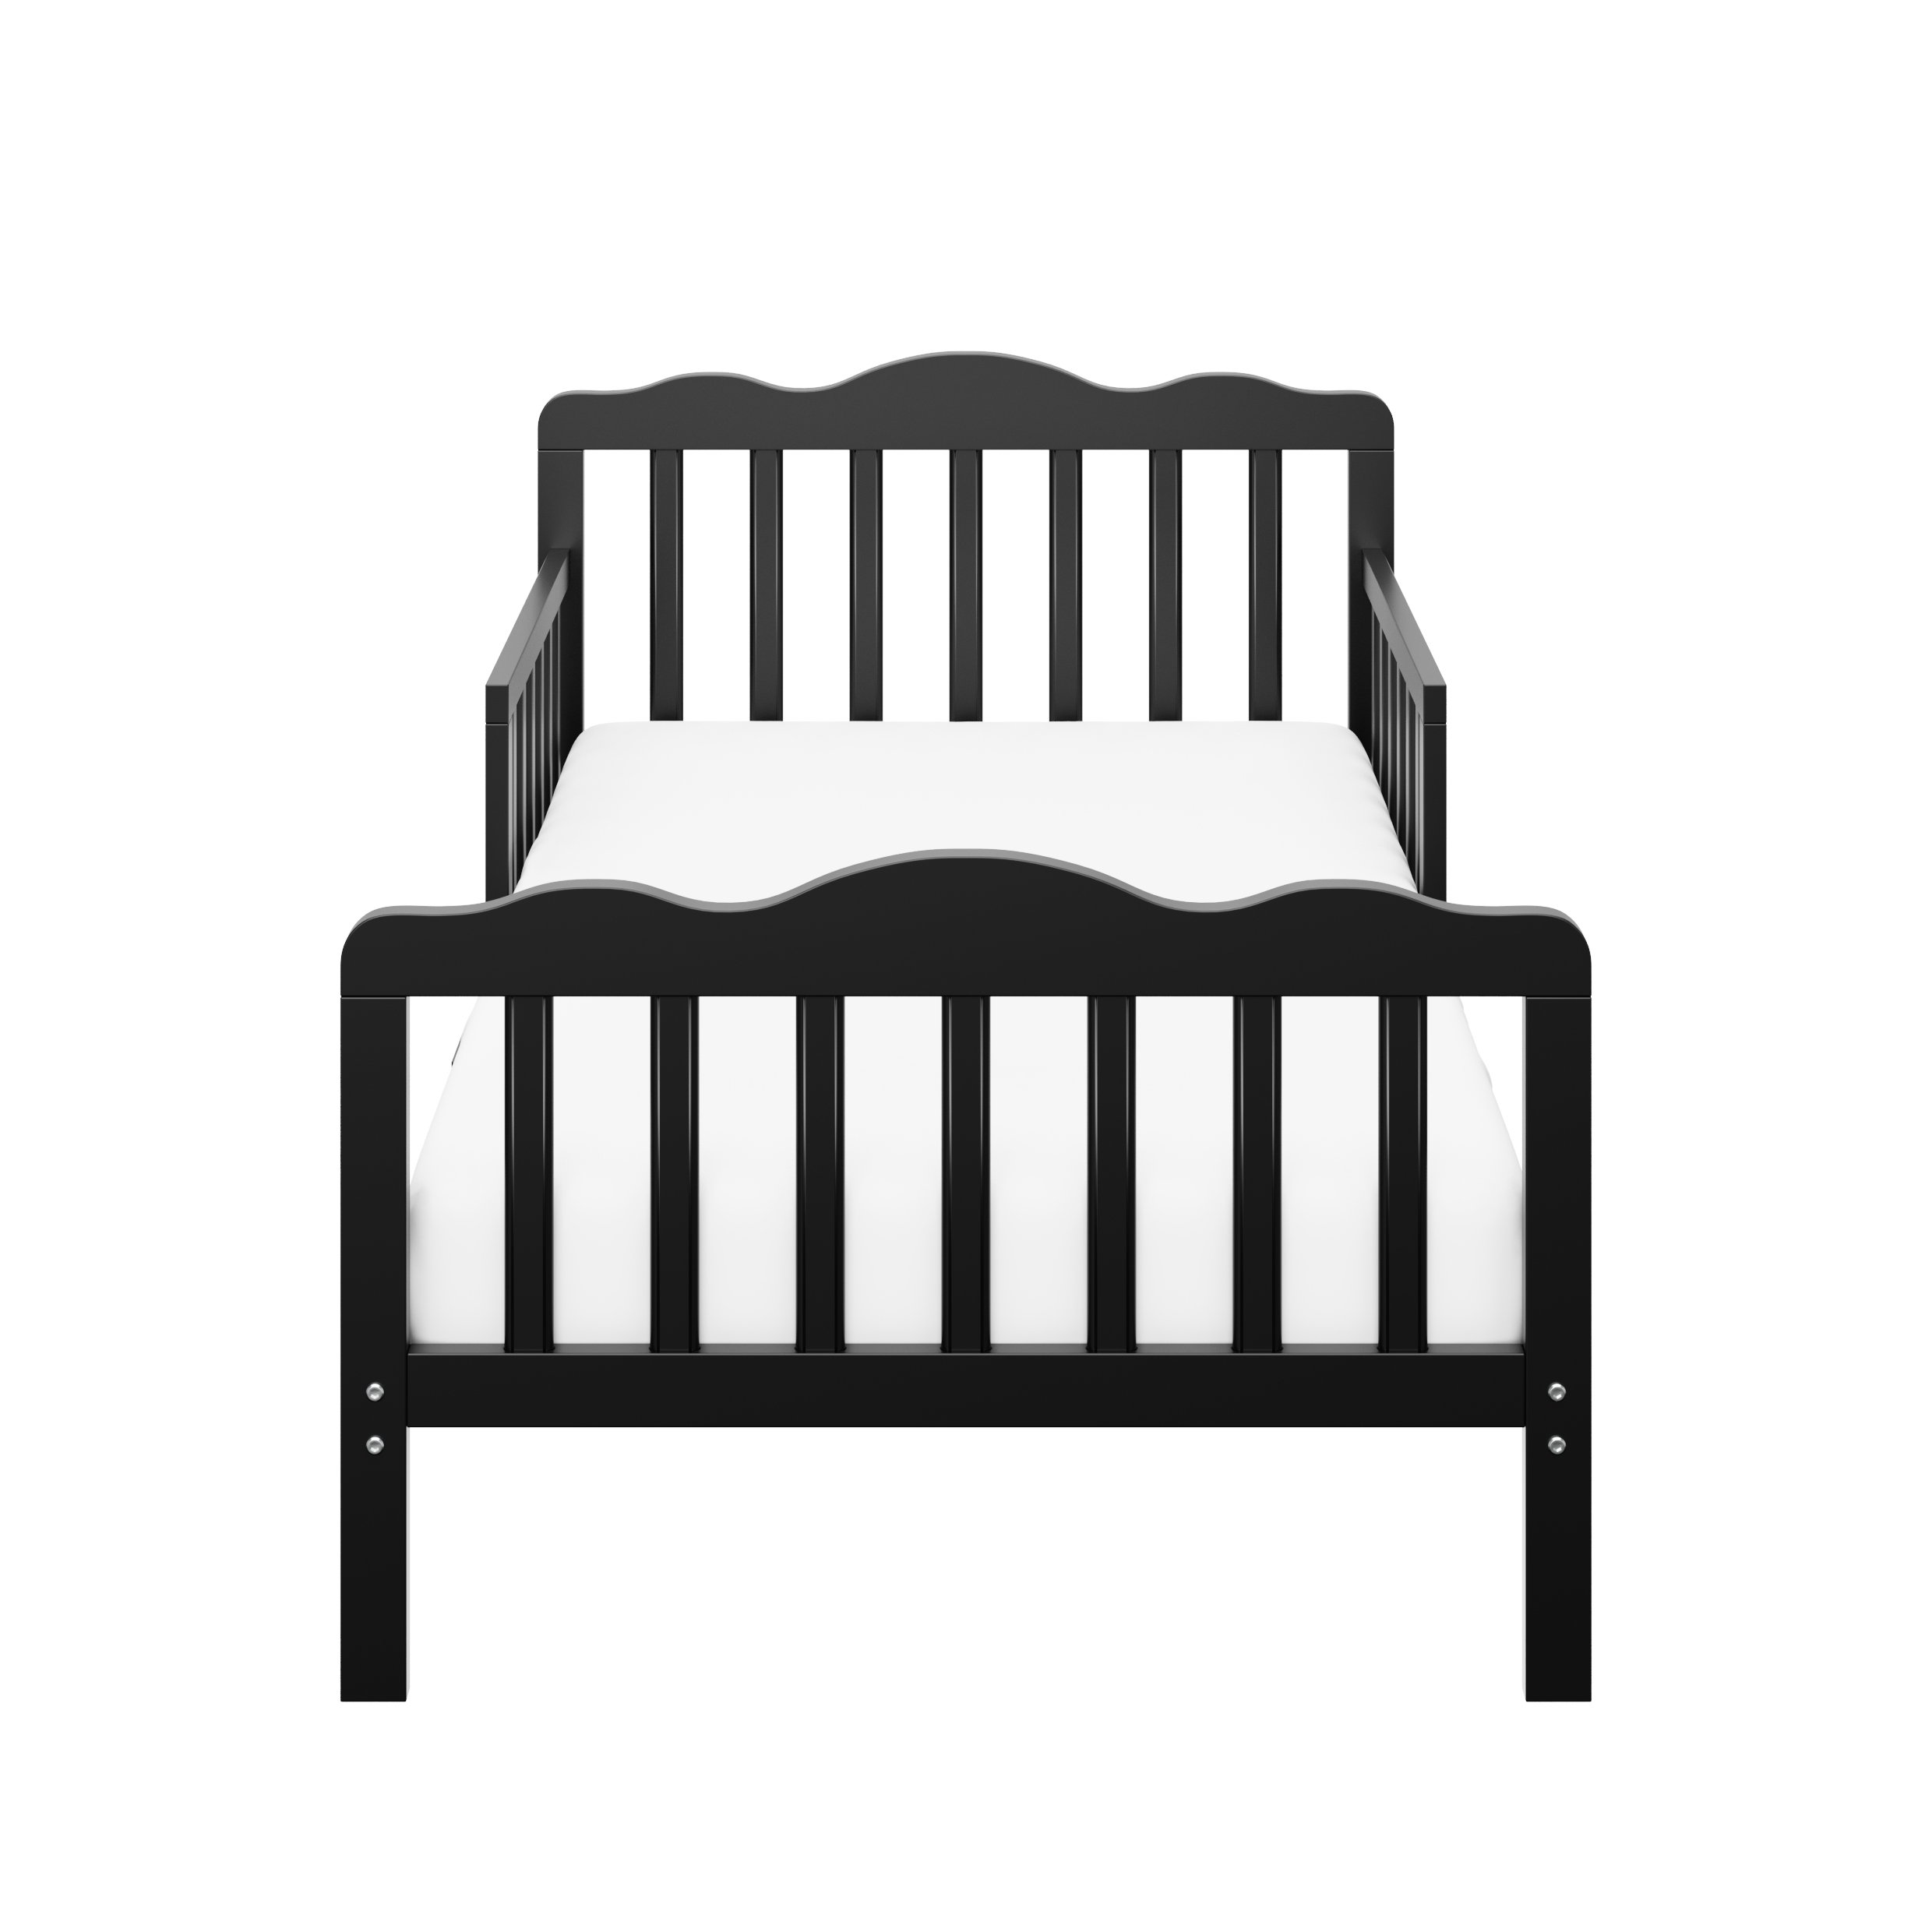 Storkcraft Hillside Toddler Bed Black, Fits Standard-Size Toddler Mattress (Not Included), Guardrails on Both Sides, Meets or Exceeds All Federal Safety Standards, Pine & Composite Construction by Stork Craft (Image #2)